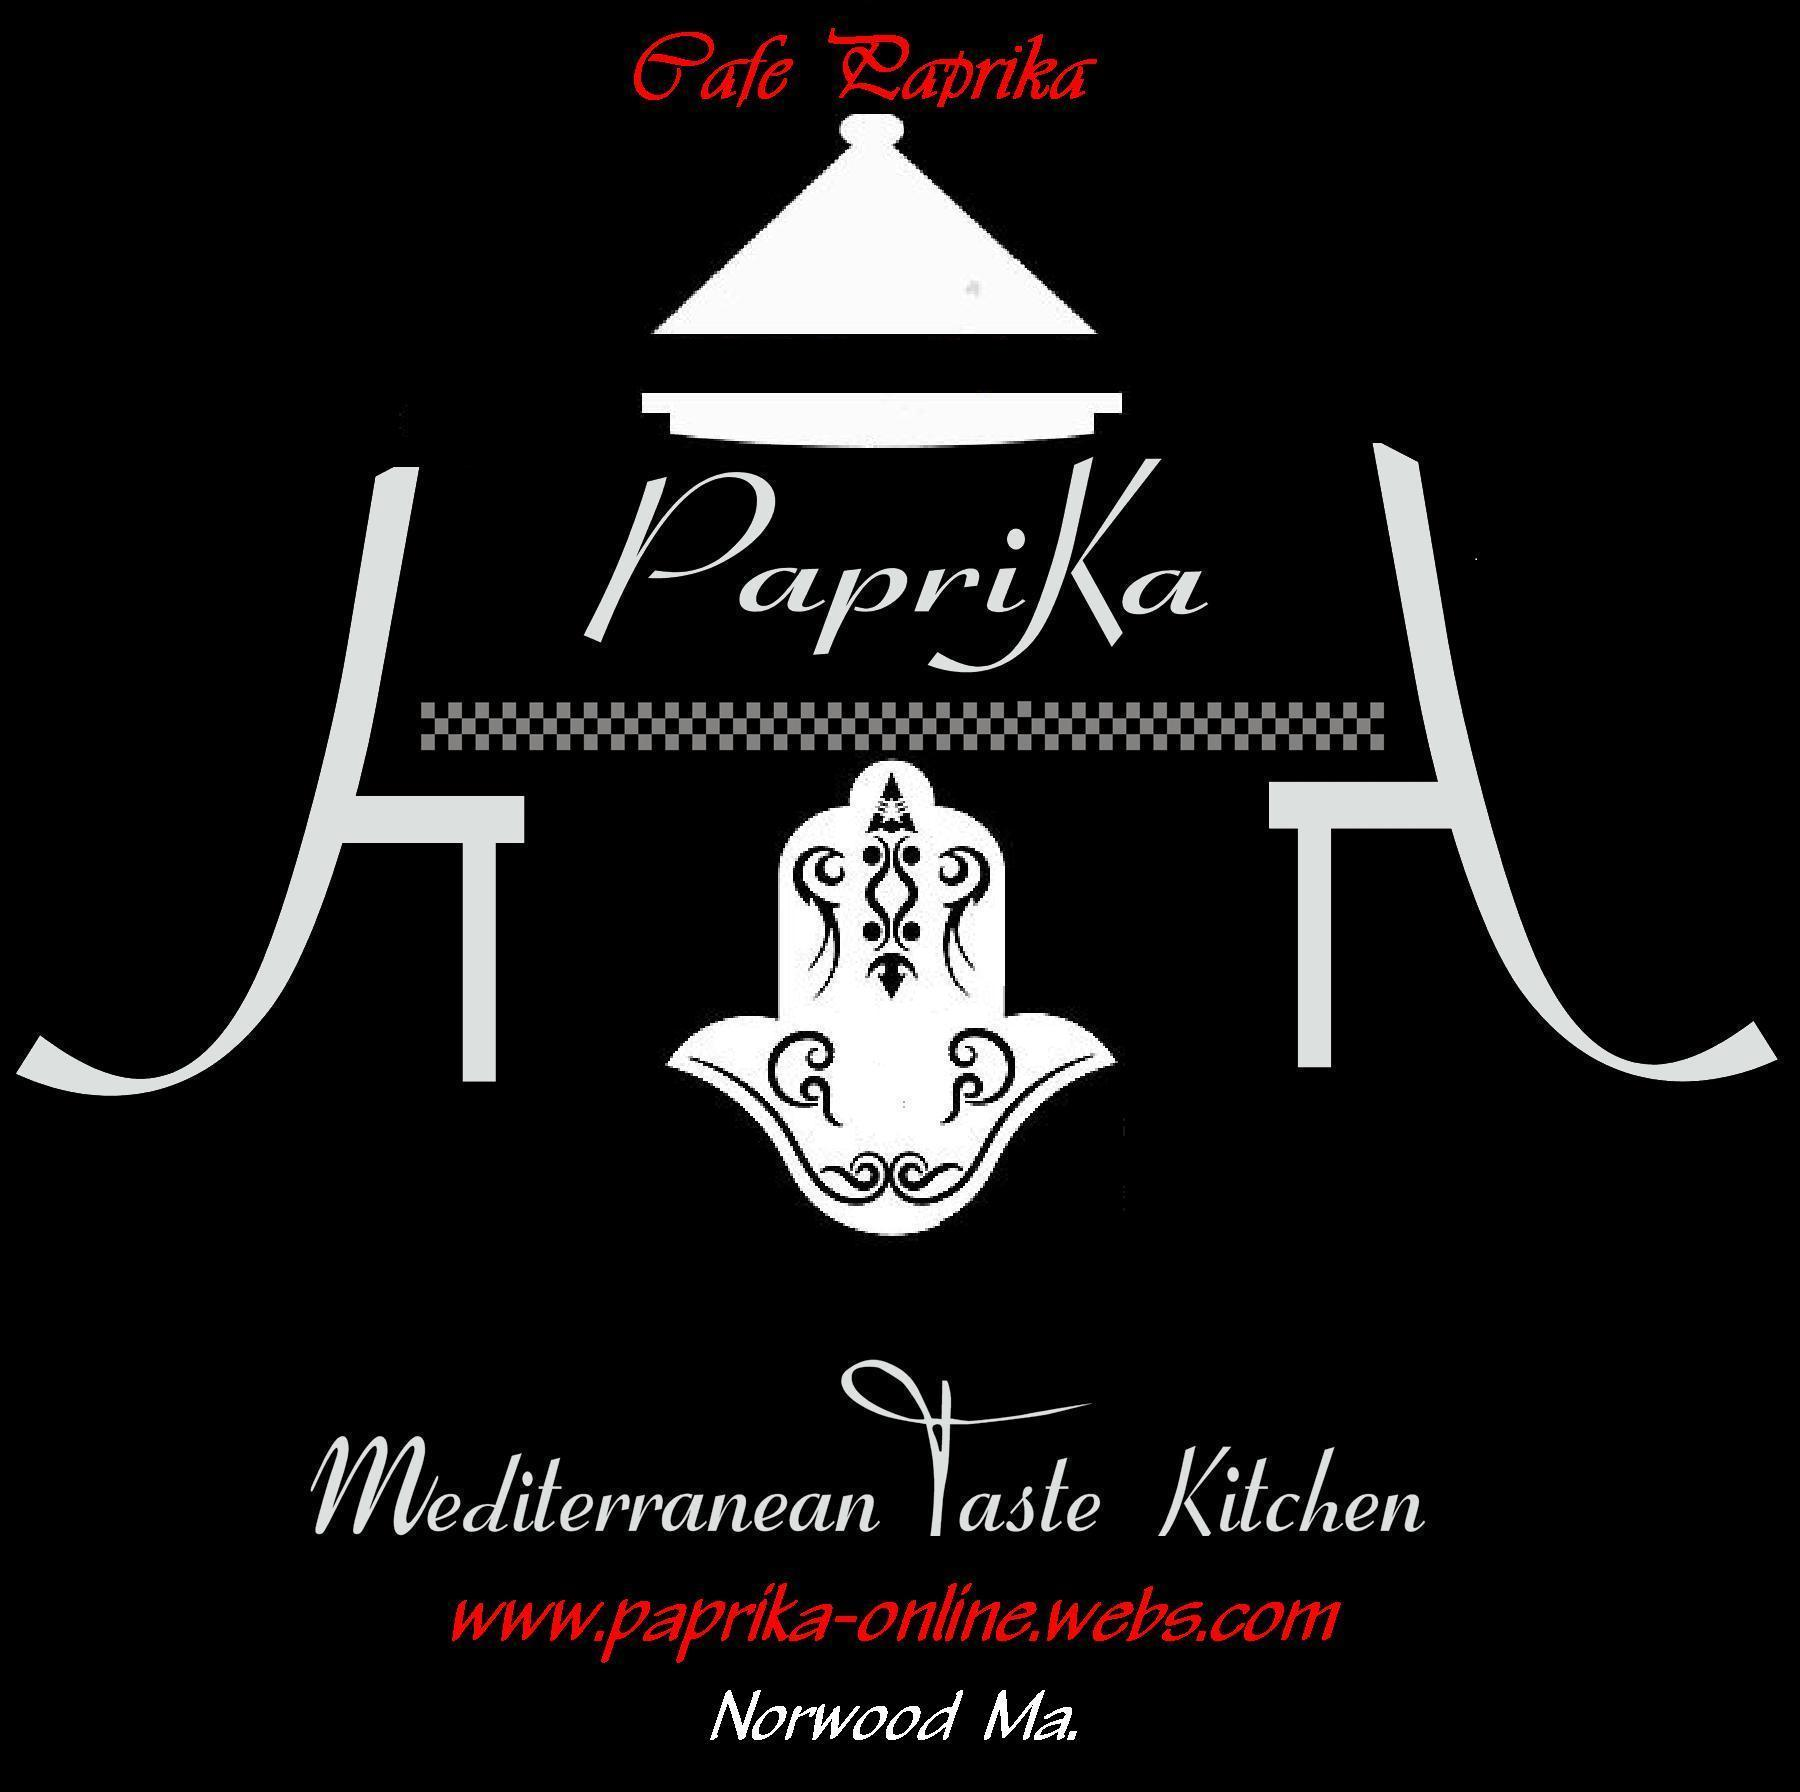 Cafe Paprika, 734 Washington street, Norwood, ma, 02062